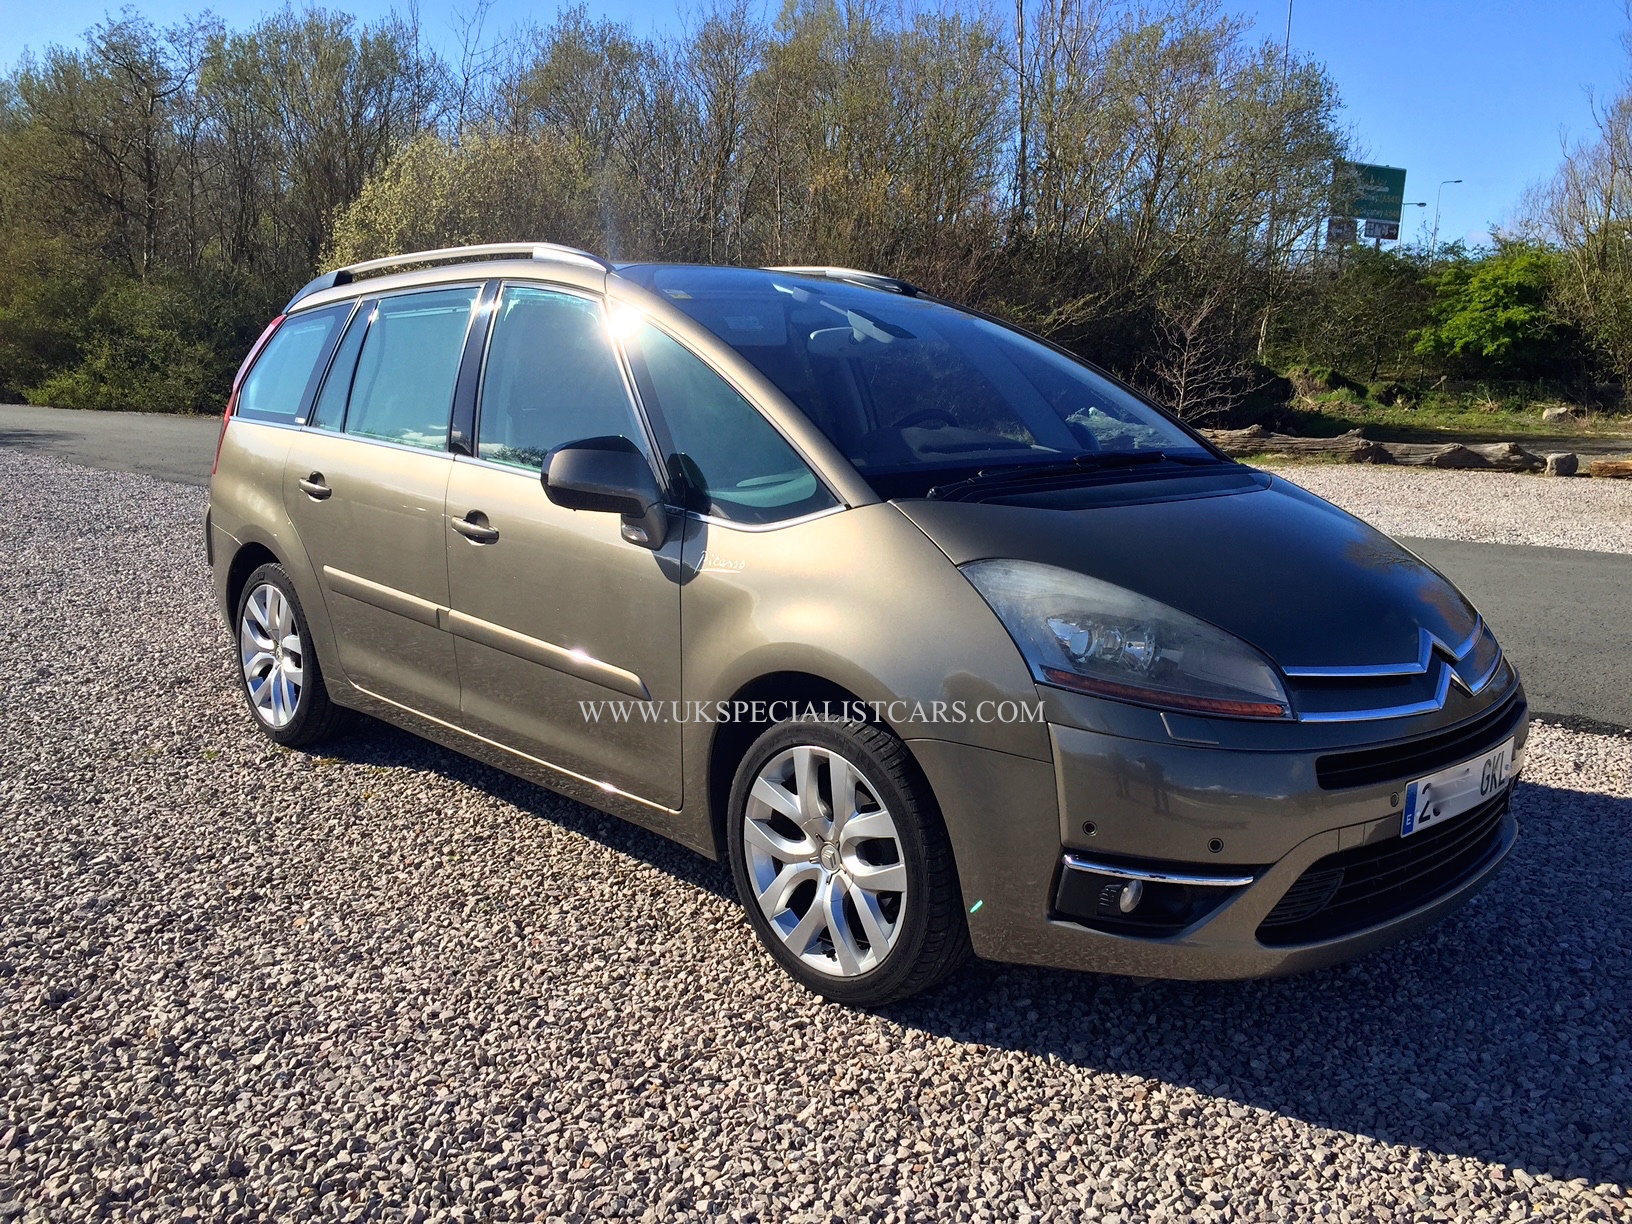 Citroen C4 Picasso Exclusive 7 Seater Automatic Lhd